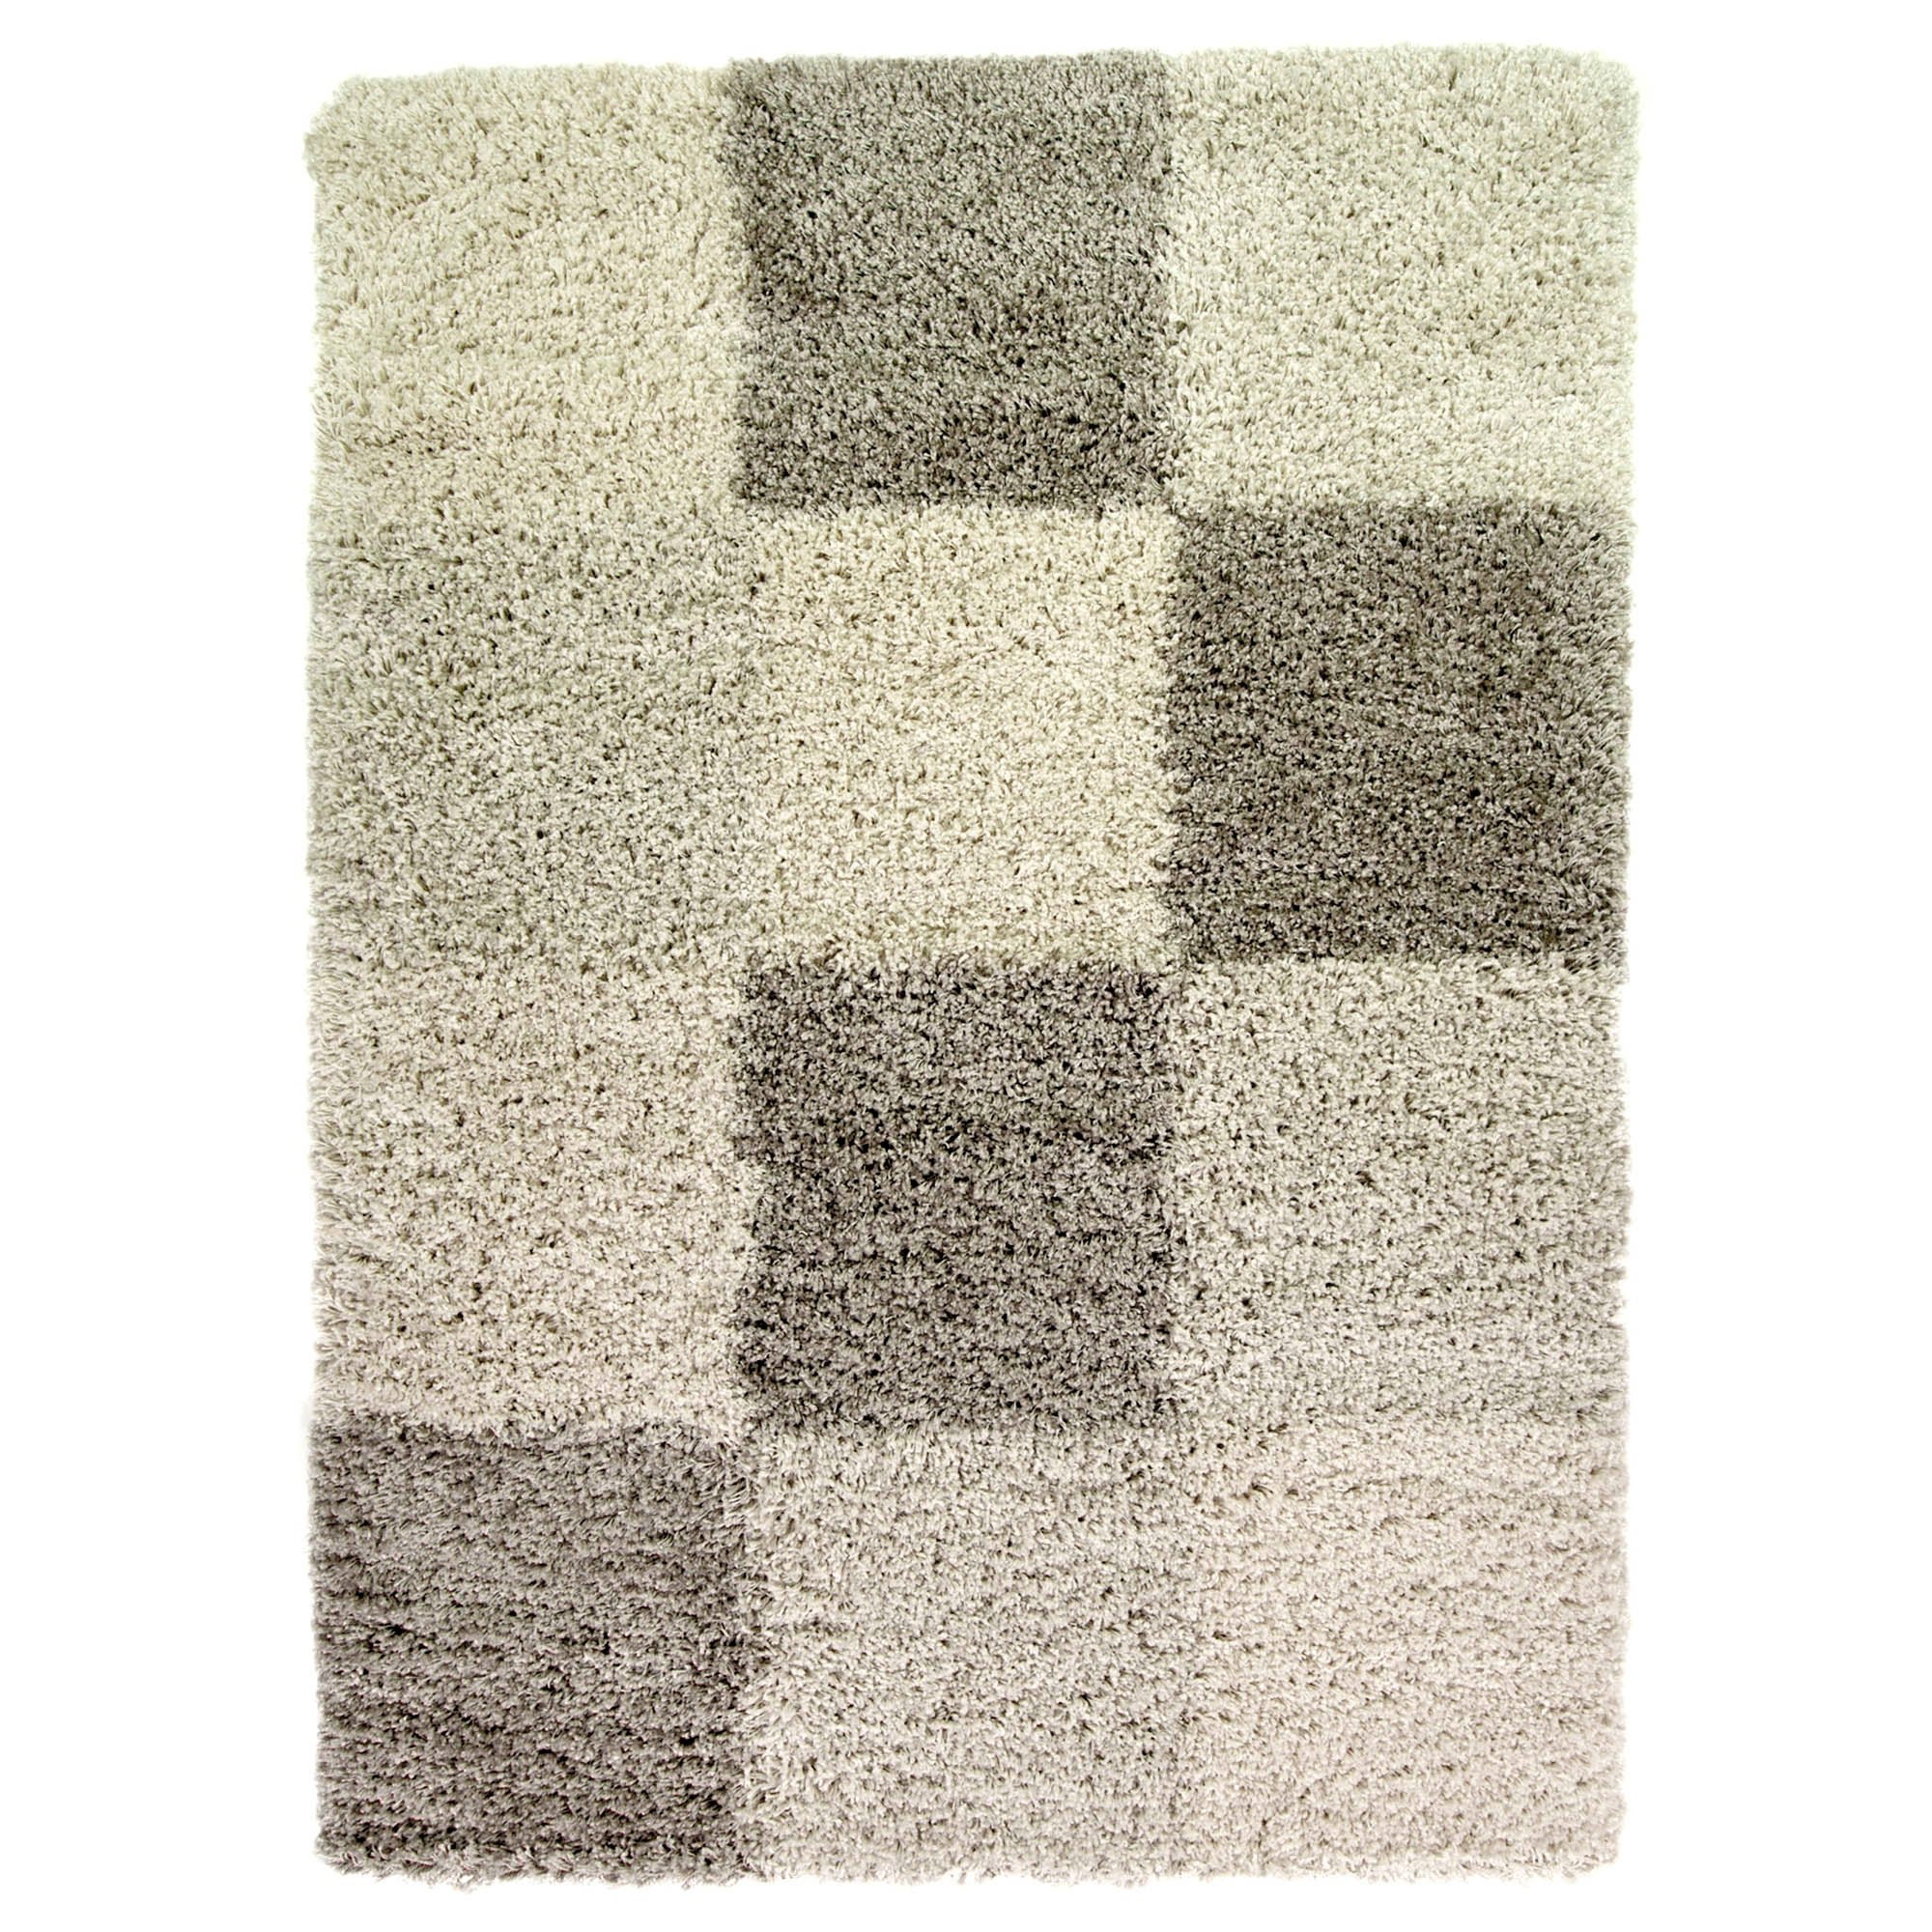 Natural Slumber Blocks Rug